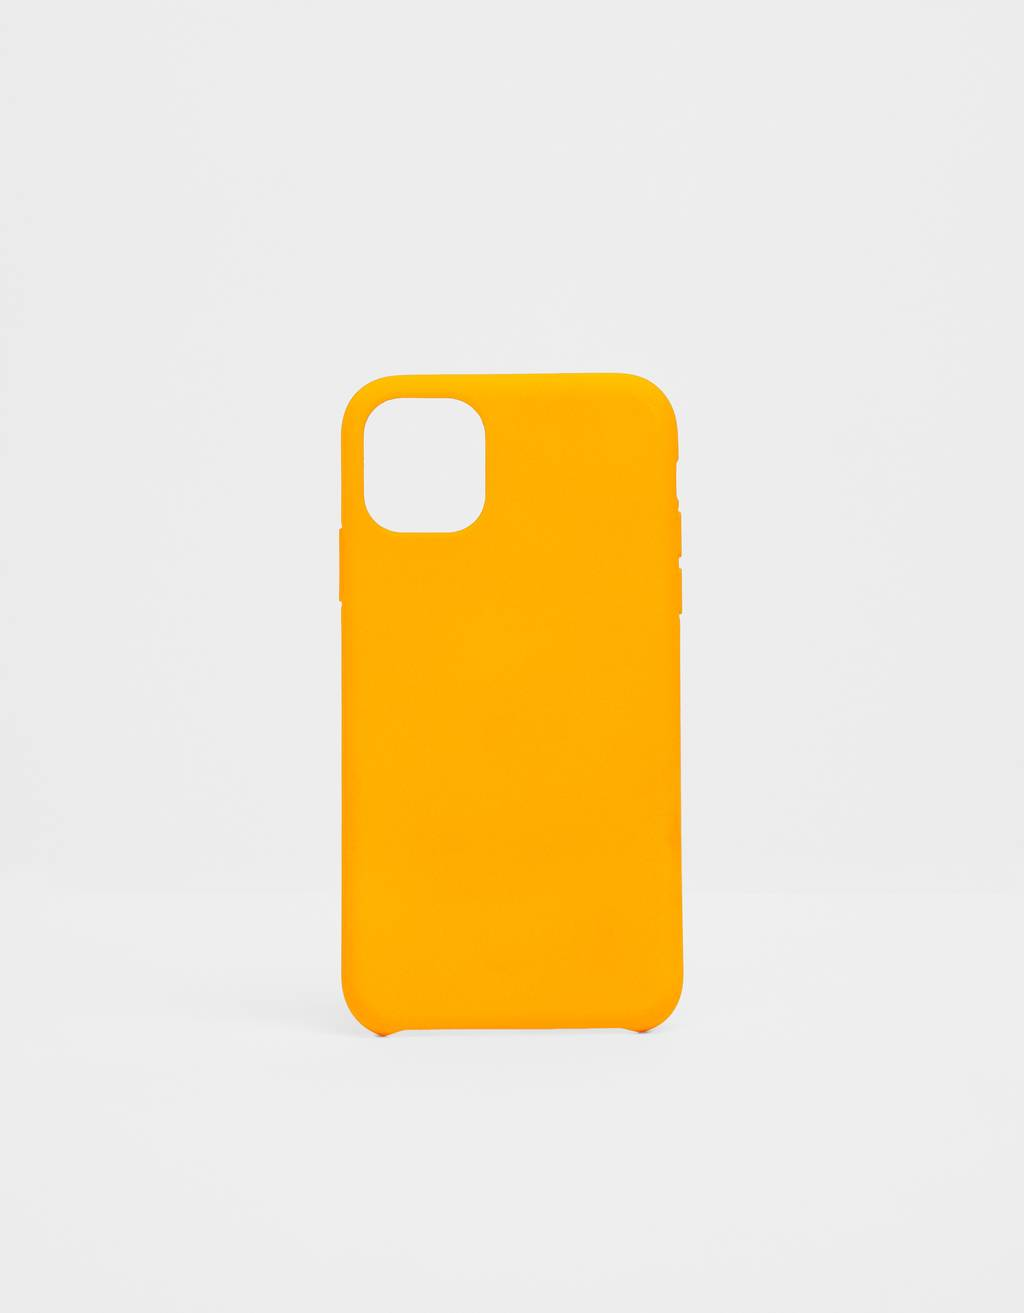 Capa monocolor iPhone 11